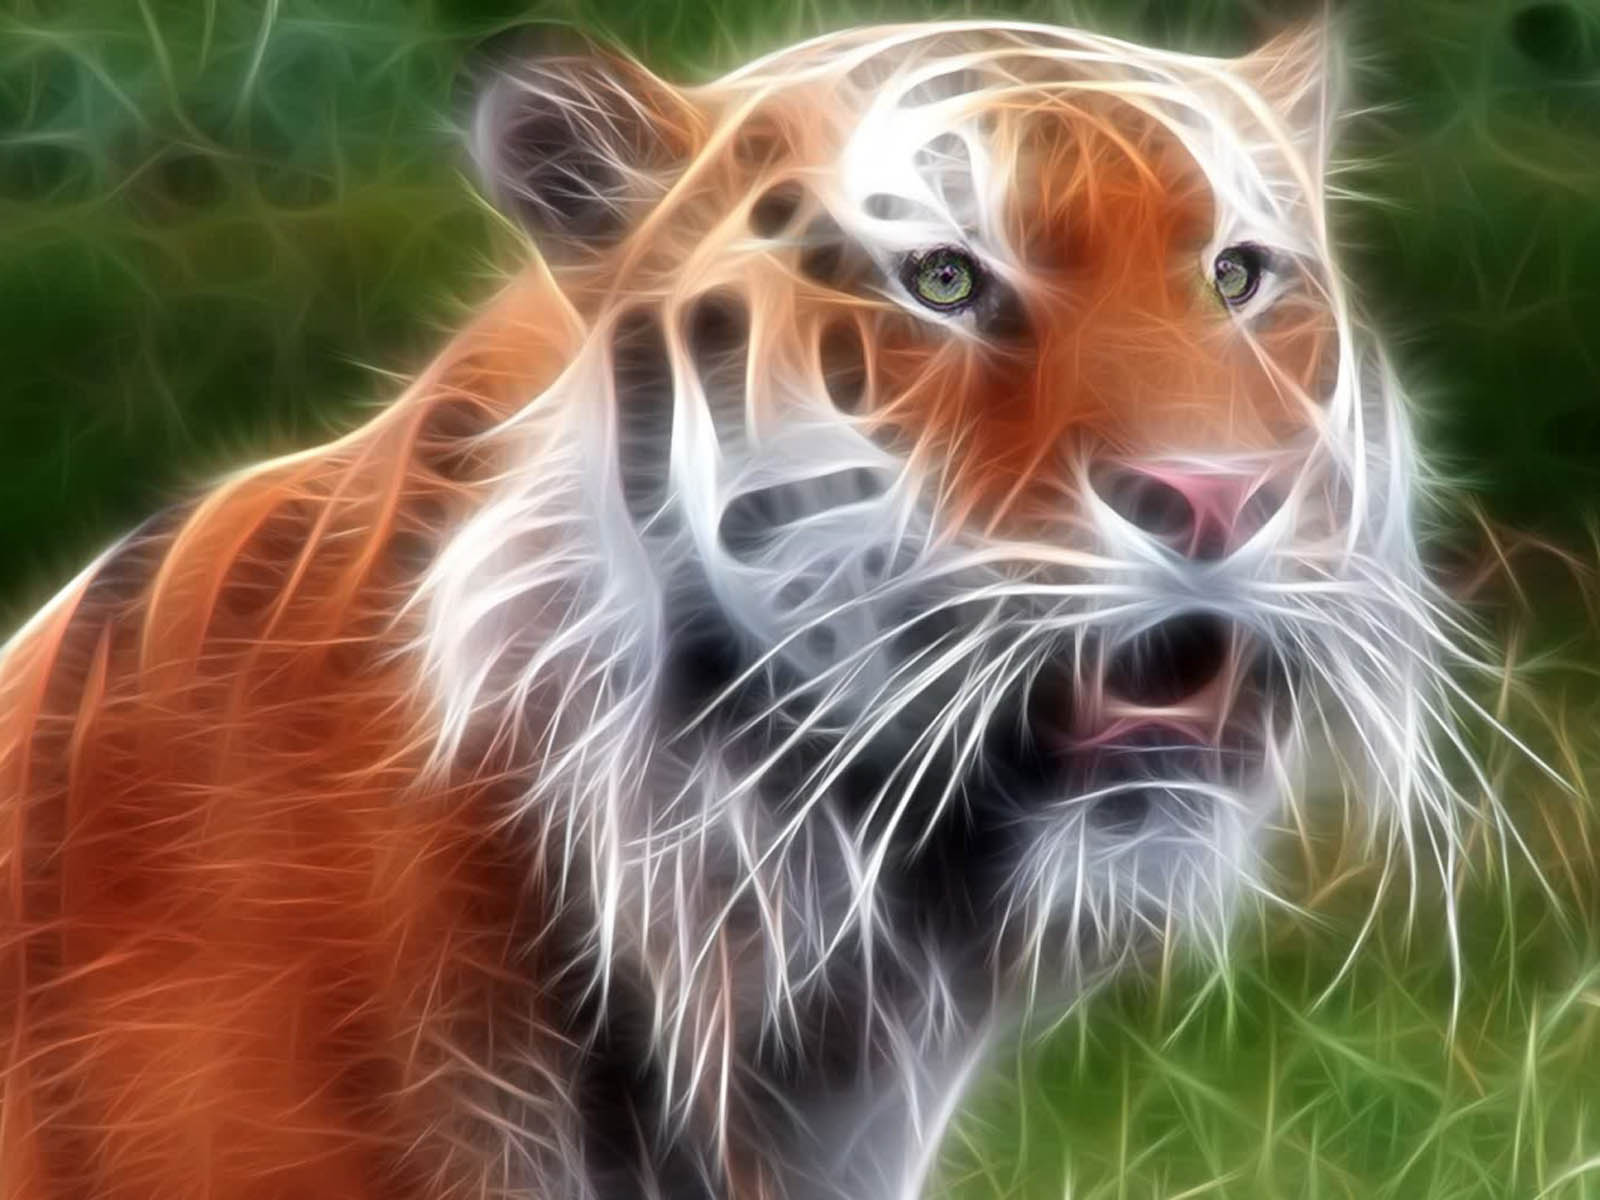 224 White <b>Tiger</b> HD <b>Wallpapers</b> | <b>Backgrounds</b> - <b>Wallpaper</b> Abyss